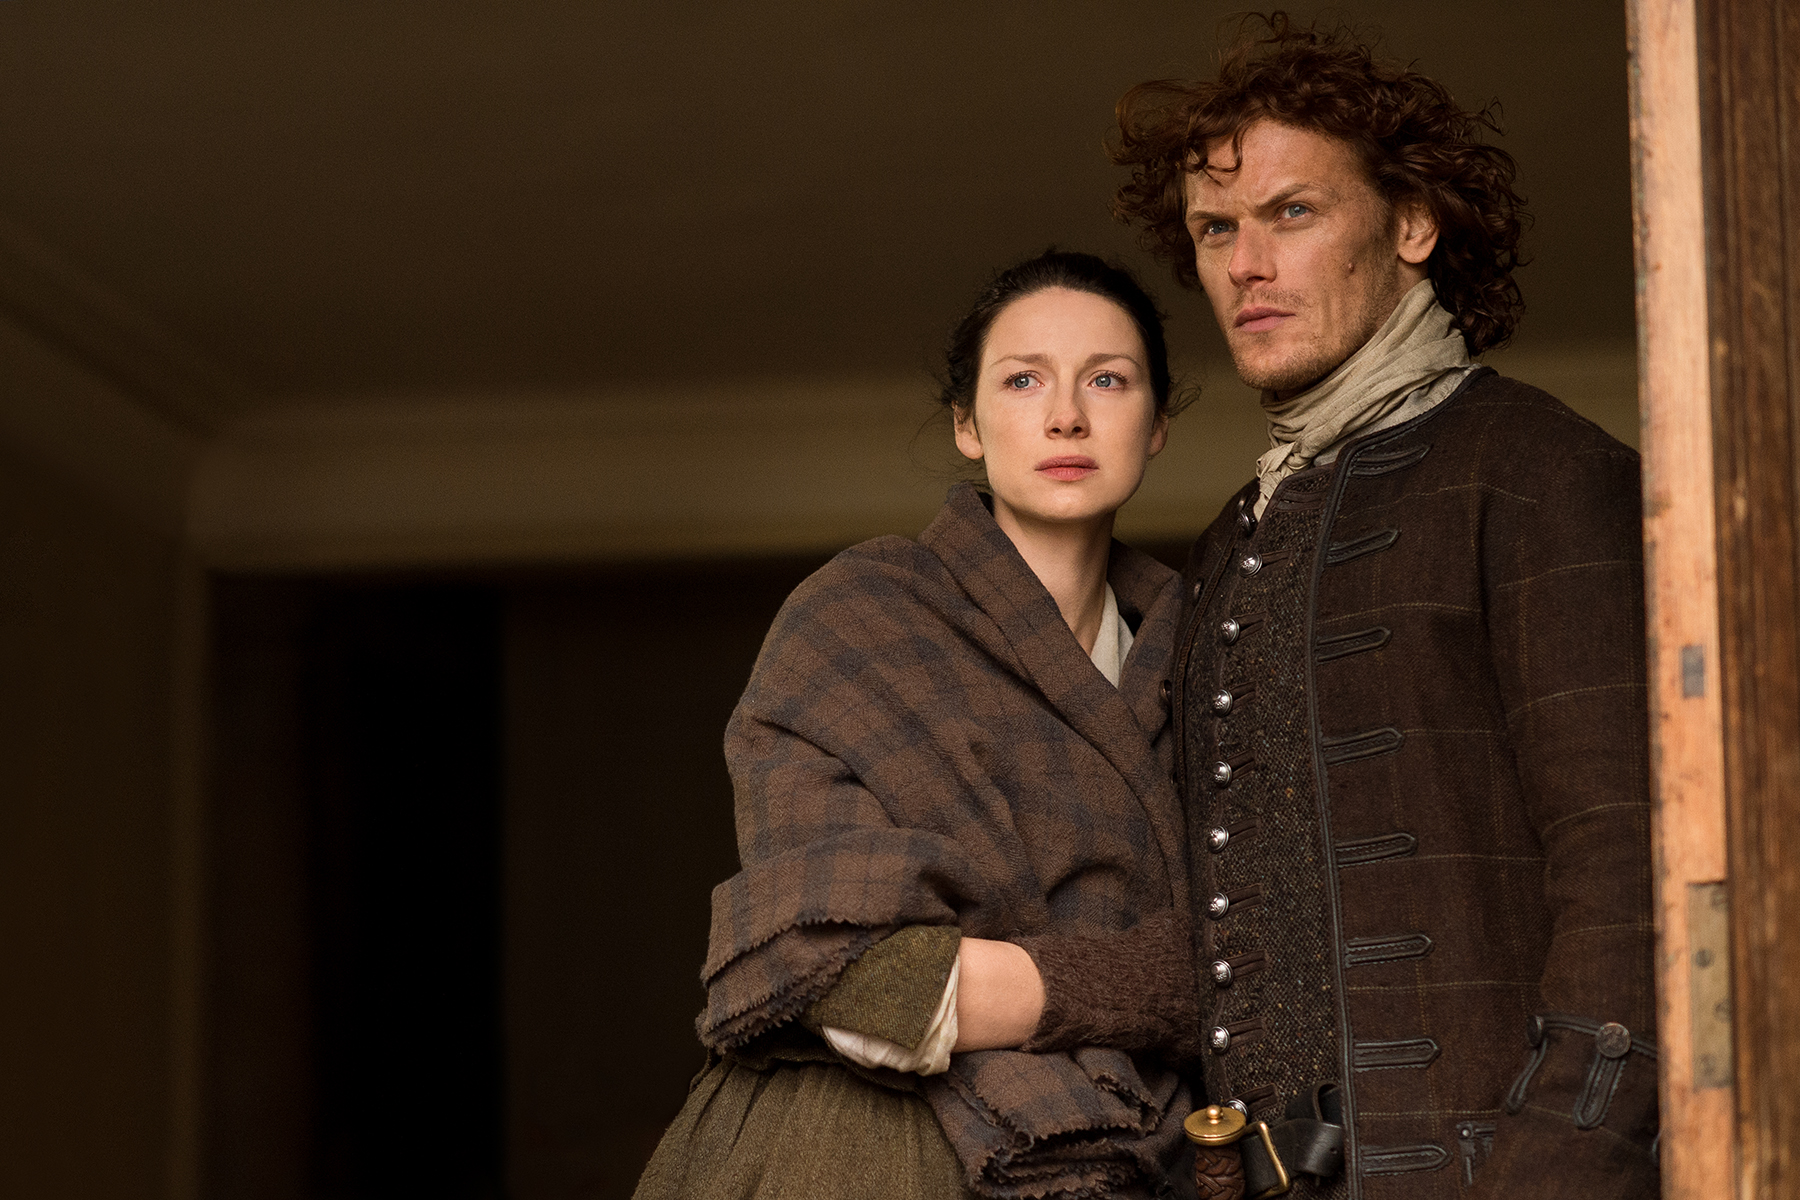 Caitriona Balfe as Claire Fraser and Sam Heughan as Jamie Fraser in 'Outlander' Season 2, Episode 13 — 'Dragonfly in Amber'